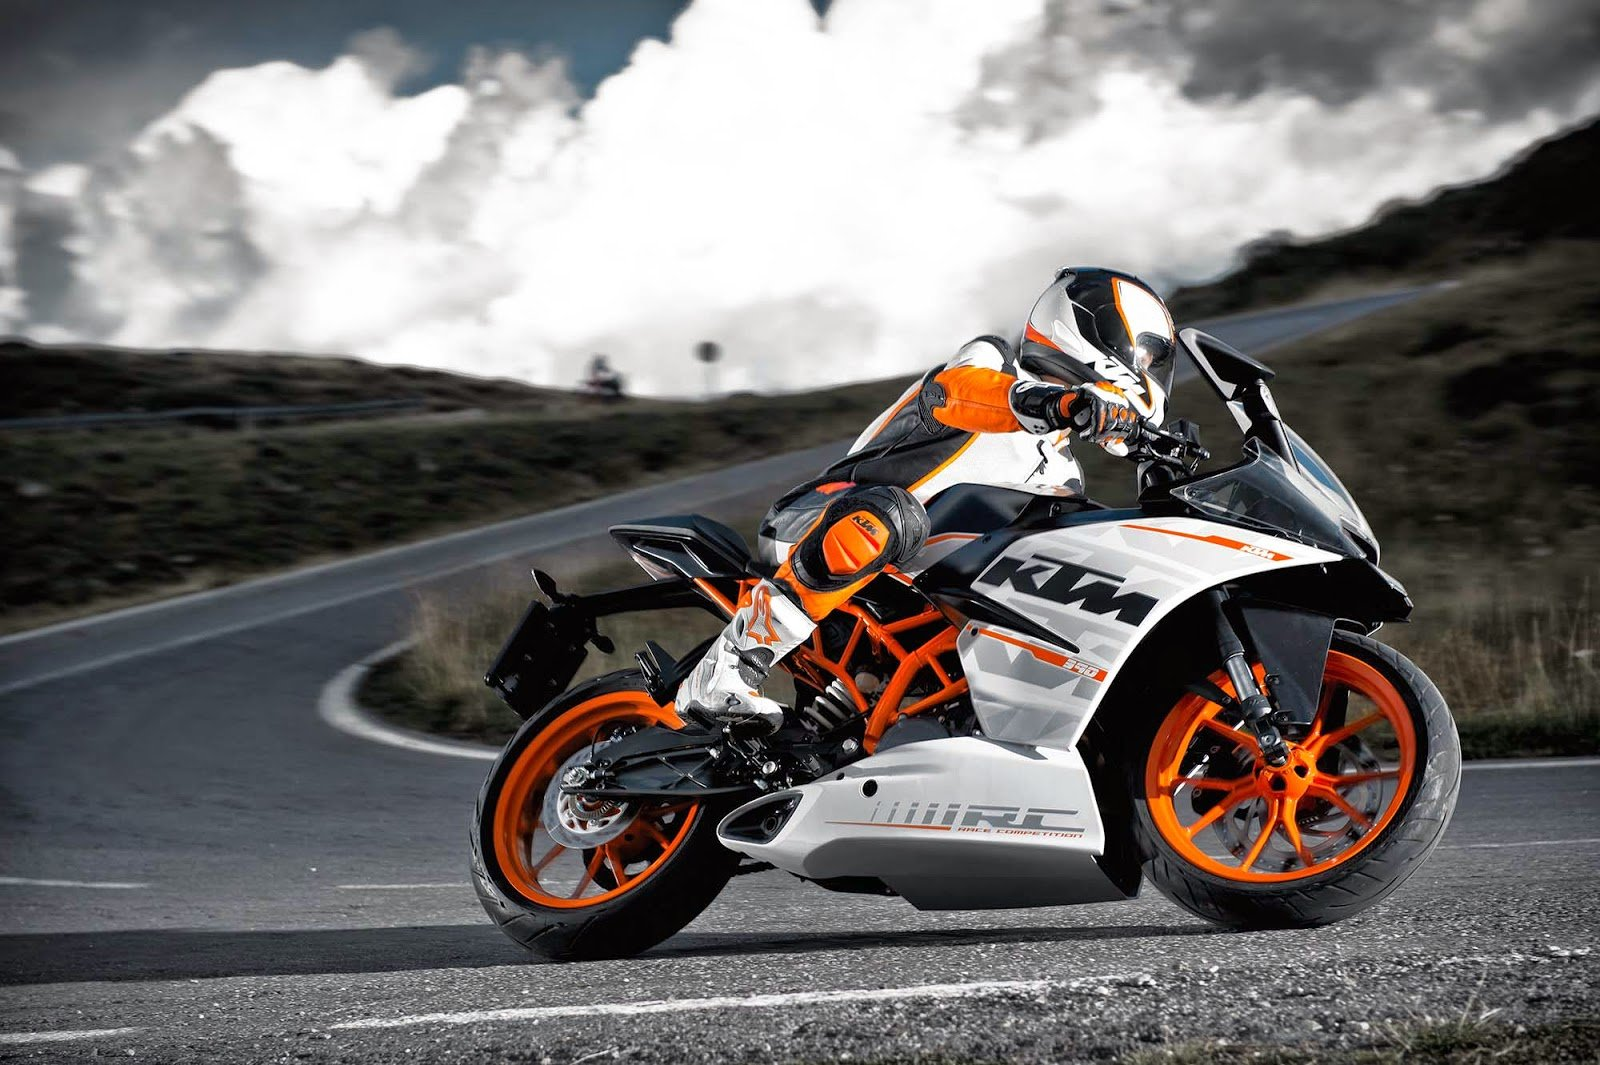 New Ray Superbike Review Ktm Rc 200 City Performance On This Month